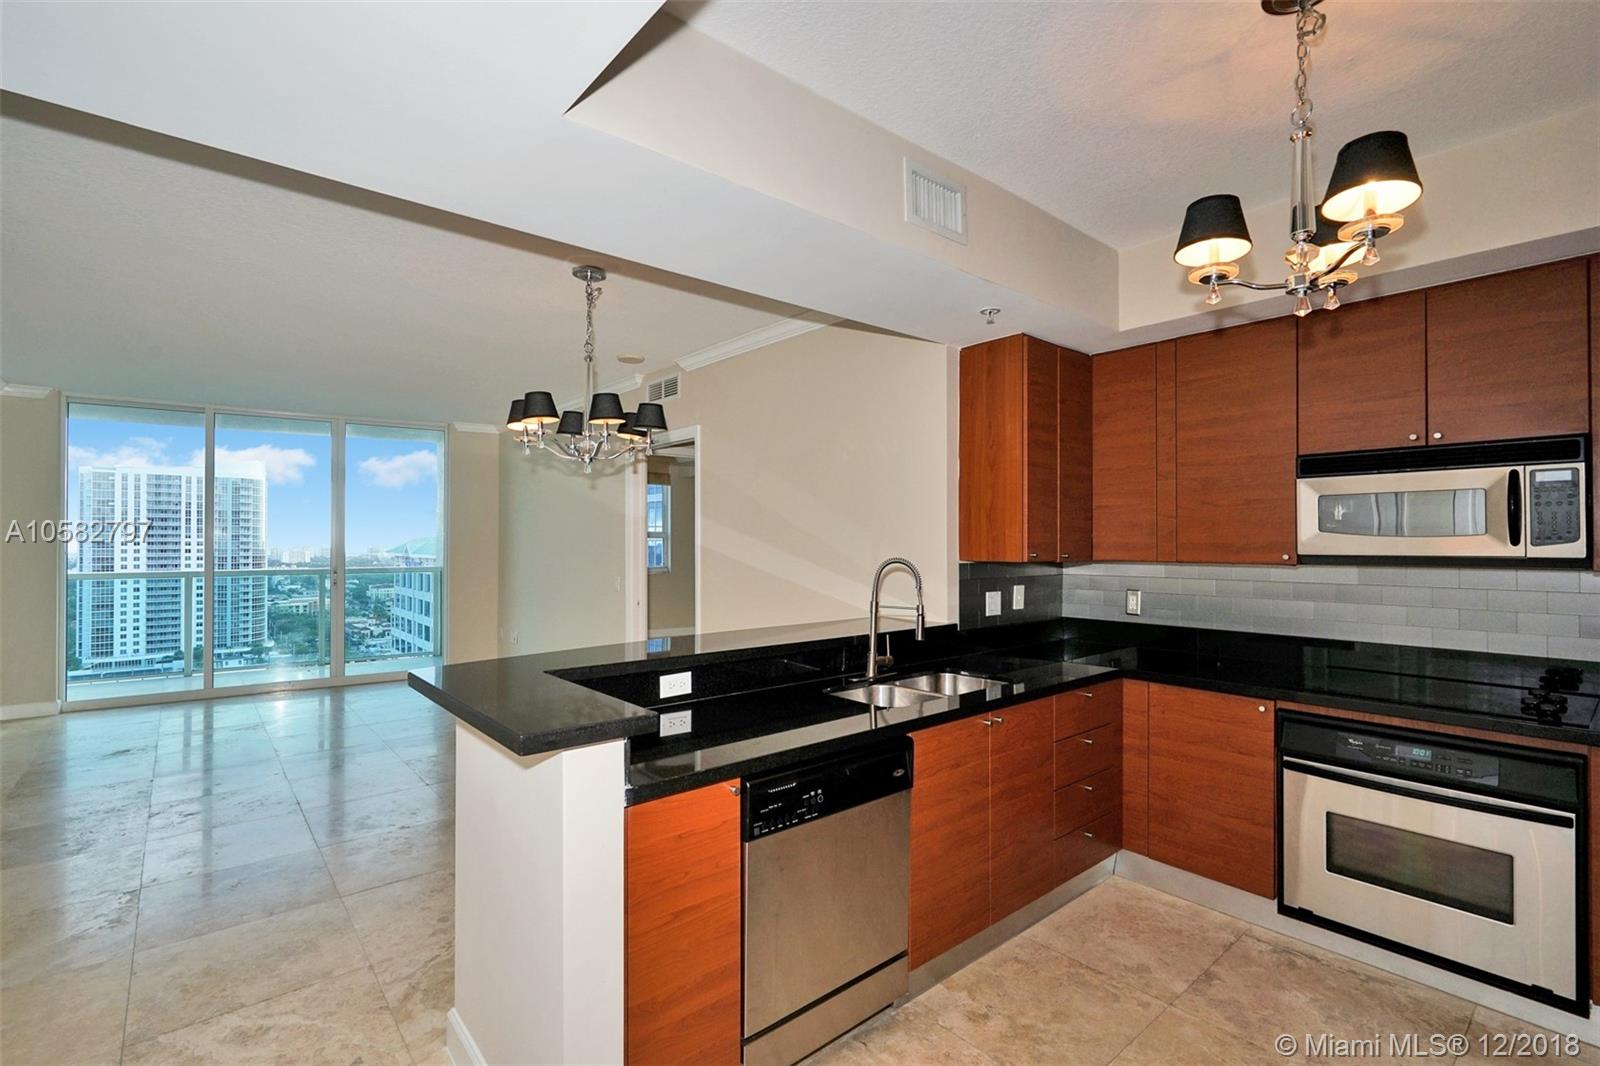 Investors Dream - Collects $35,400 annually.  City and Ocean views from every room.  Saturnia marble throughout, stainless steel appliances and large master bathroom.  5 star amenities including a roof top pool, fitness center, movie theater, valet parking and 24hour doorman.  Building comes with upgraded cable (HBO) and wifi.  Walk or ride your bike to  the beach.  Minutes to the airport.  Maximum of 2 pest (under 50lbs).  See Broker Remarks